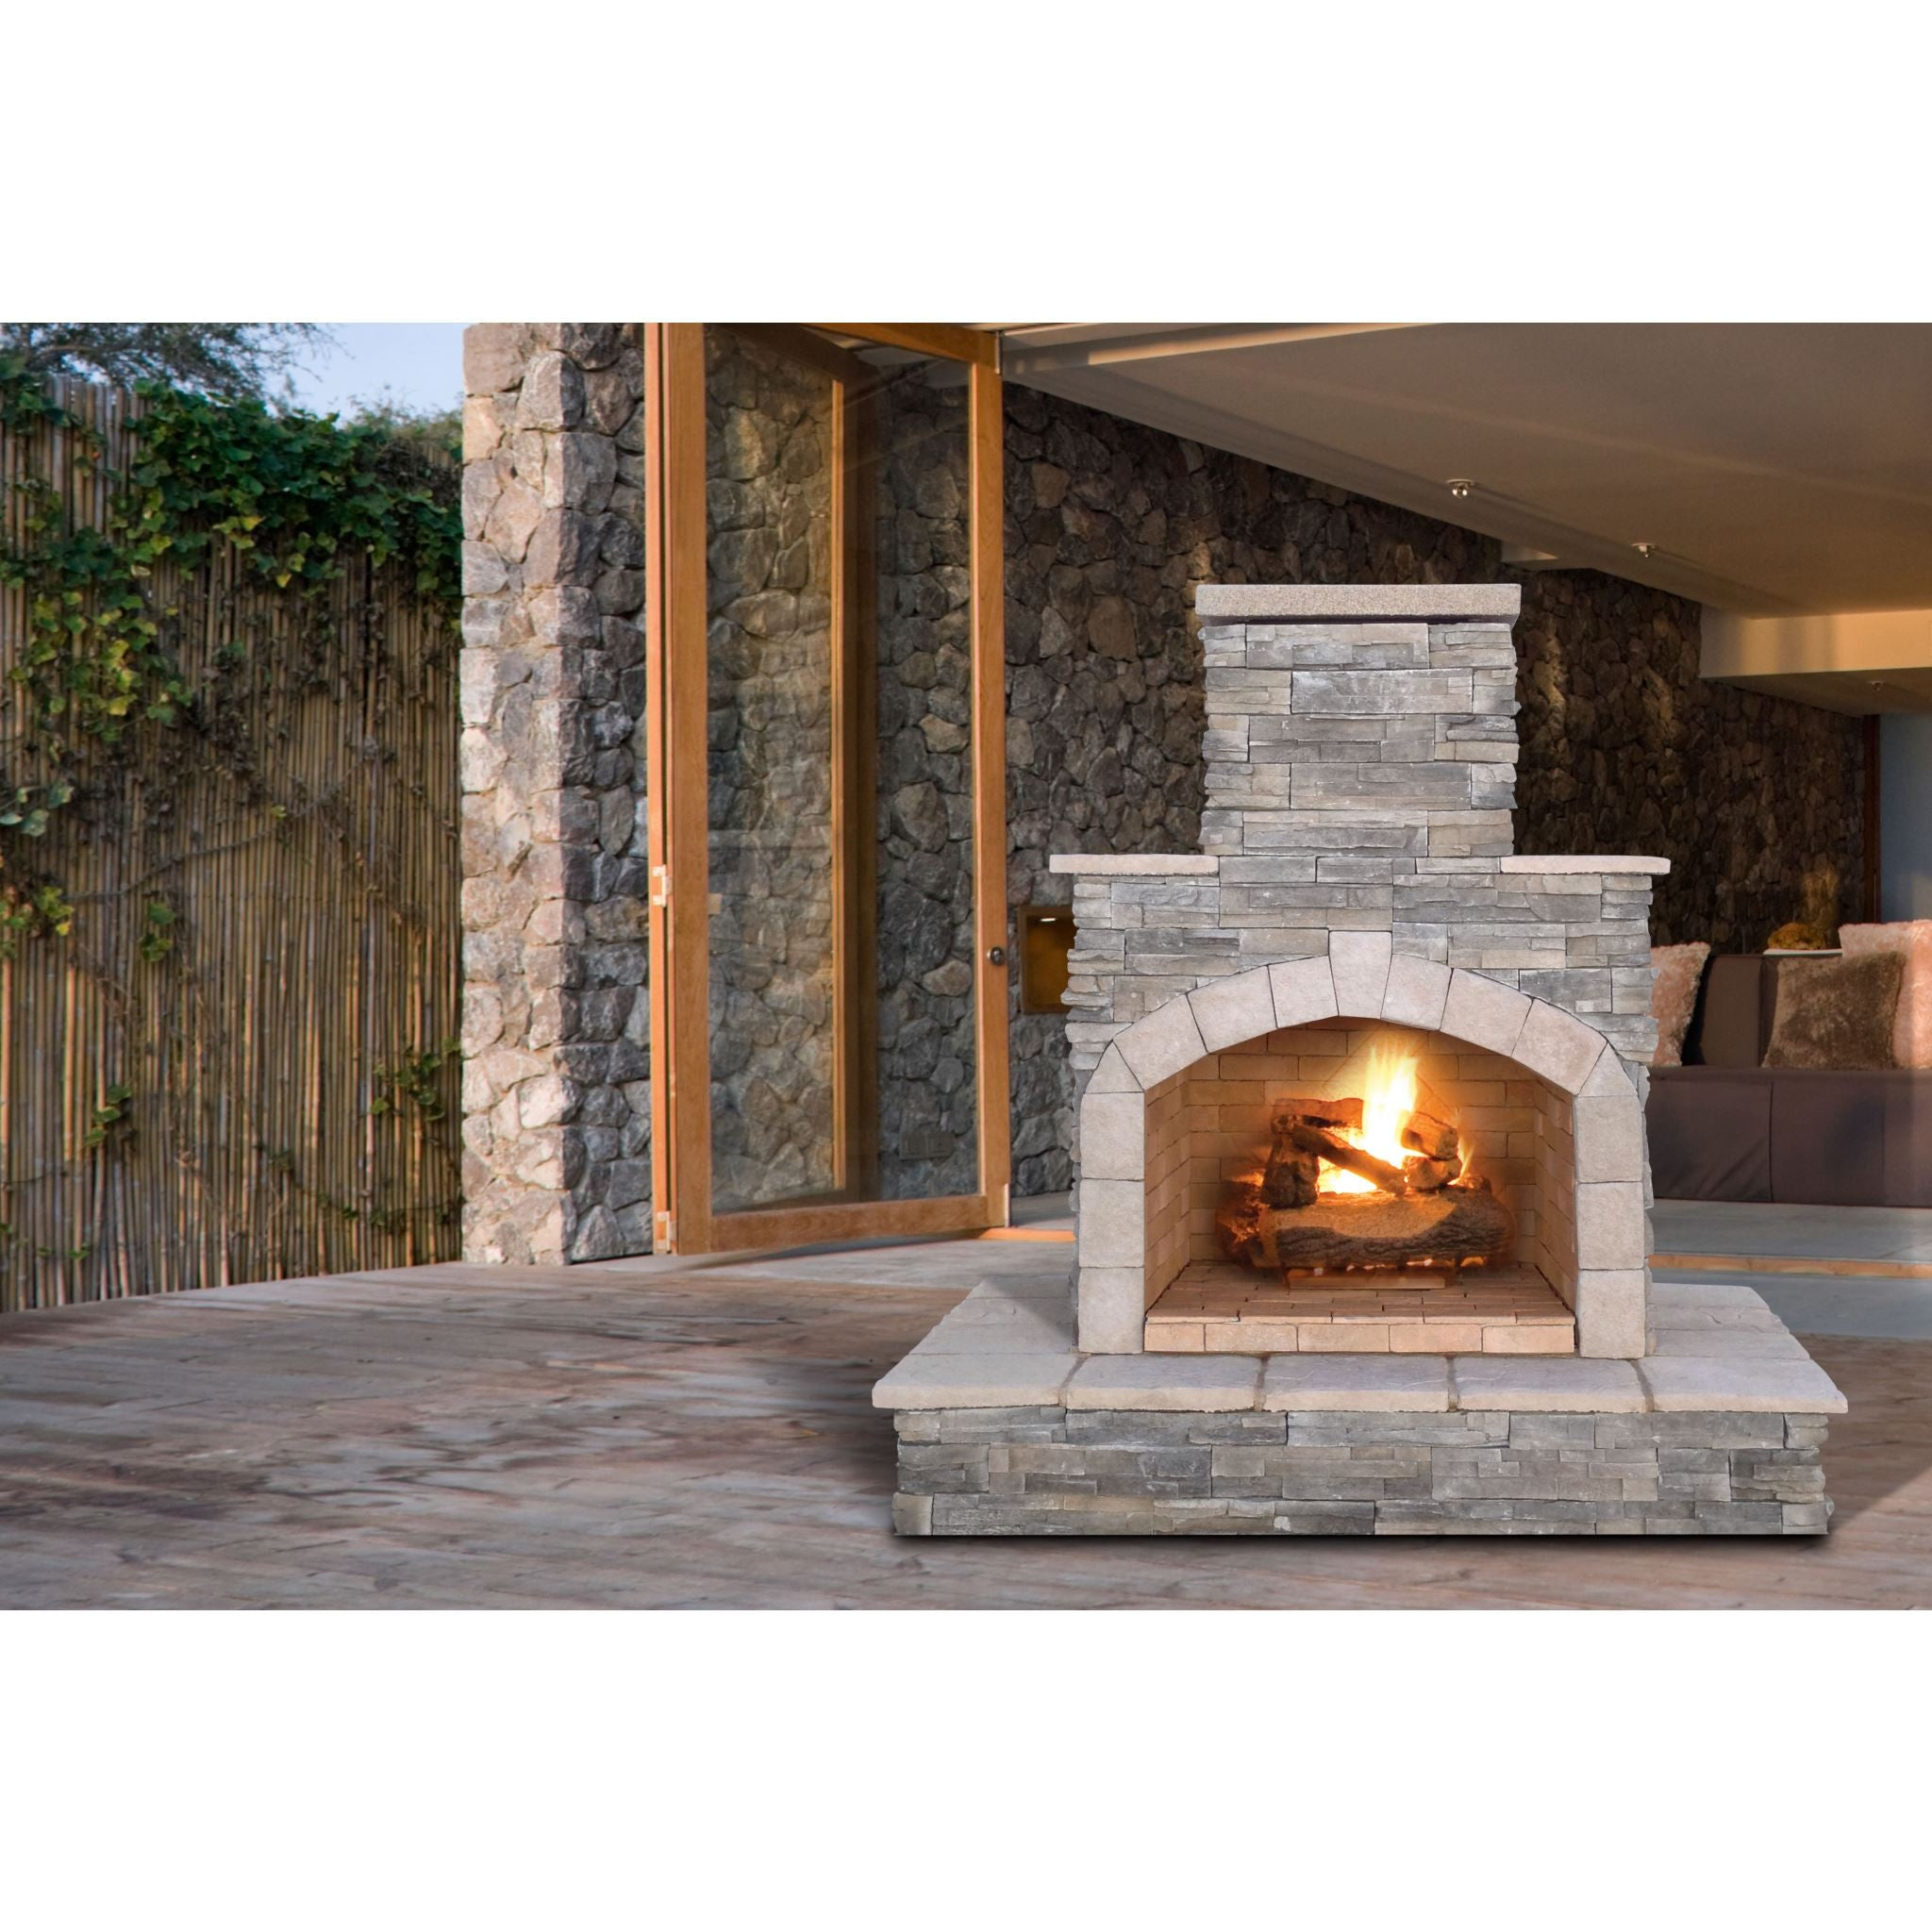 Cal Flame 72 Inch Outdoor Fireplace Frp 908 3 Betterpatio Com